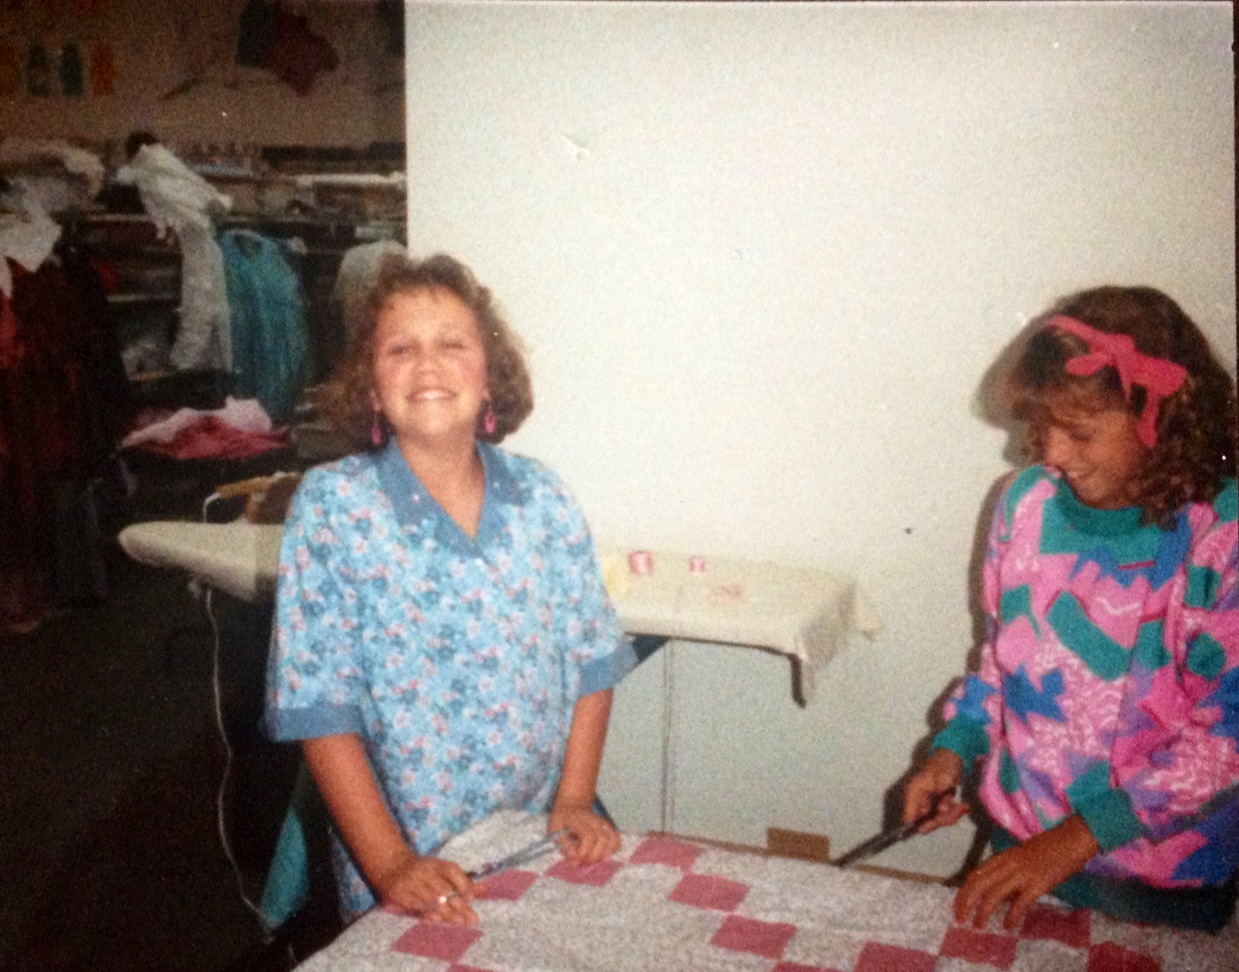 Me, at 11-years-old, making my very first quilt.